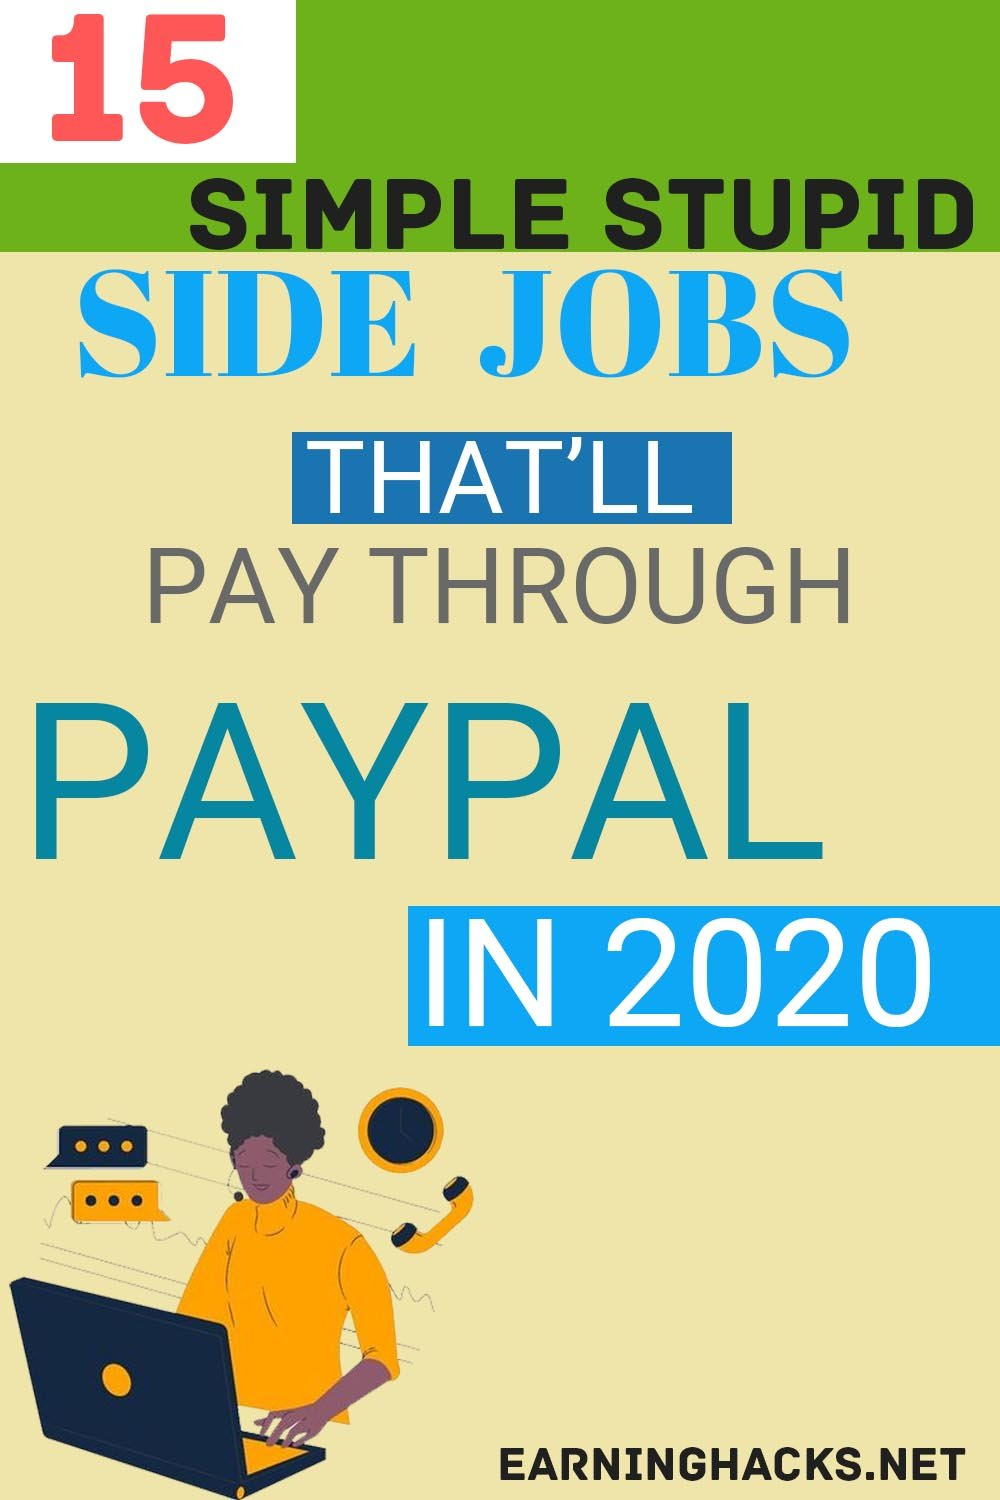 15 Side Jobs That'll Pay Through Paypal